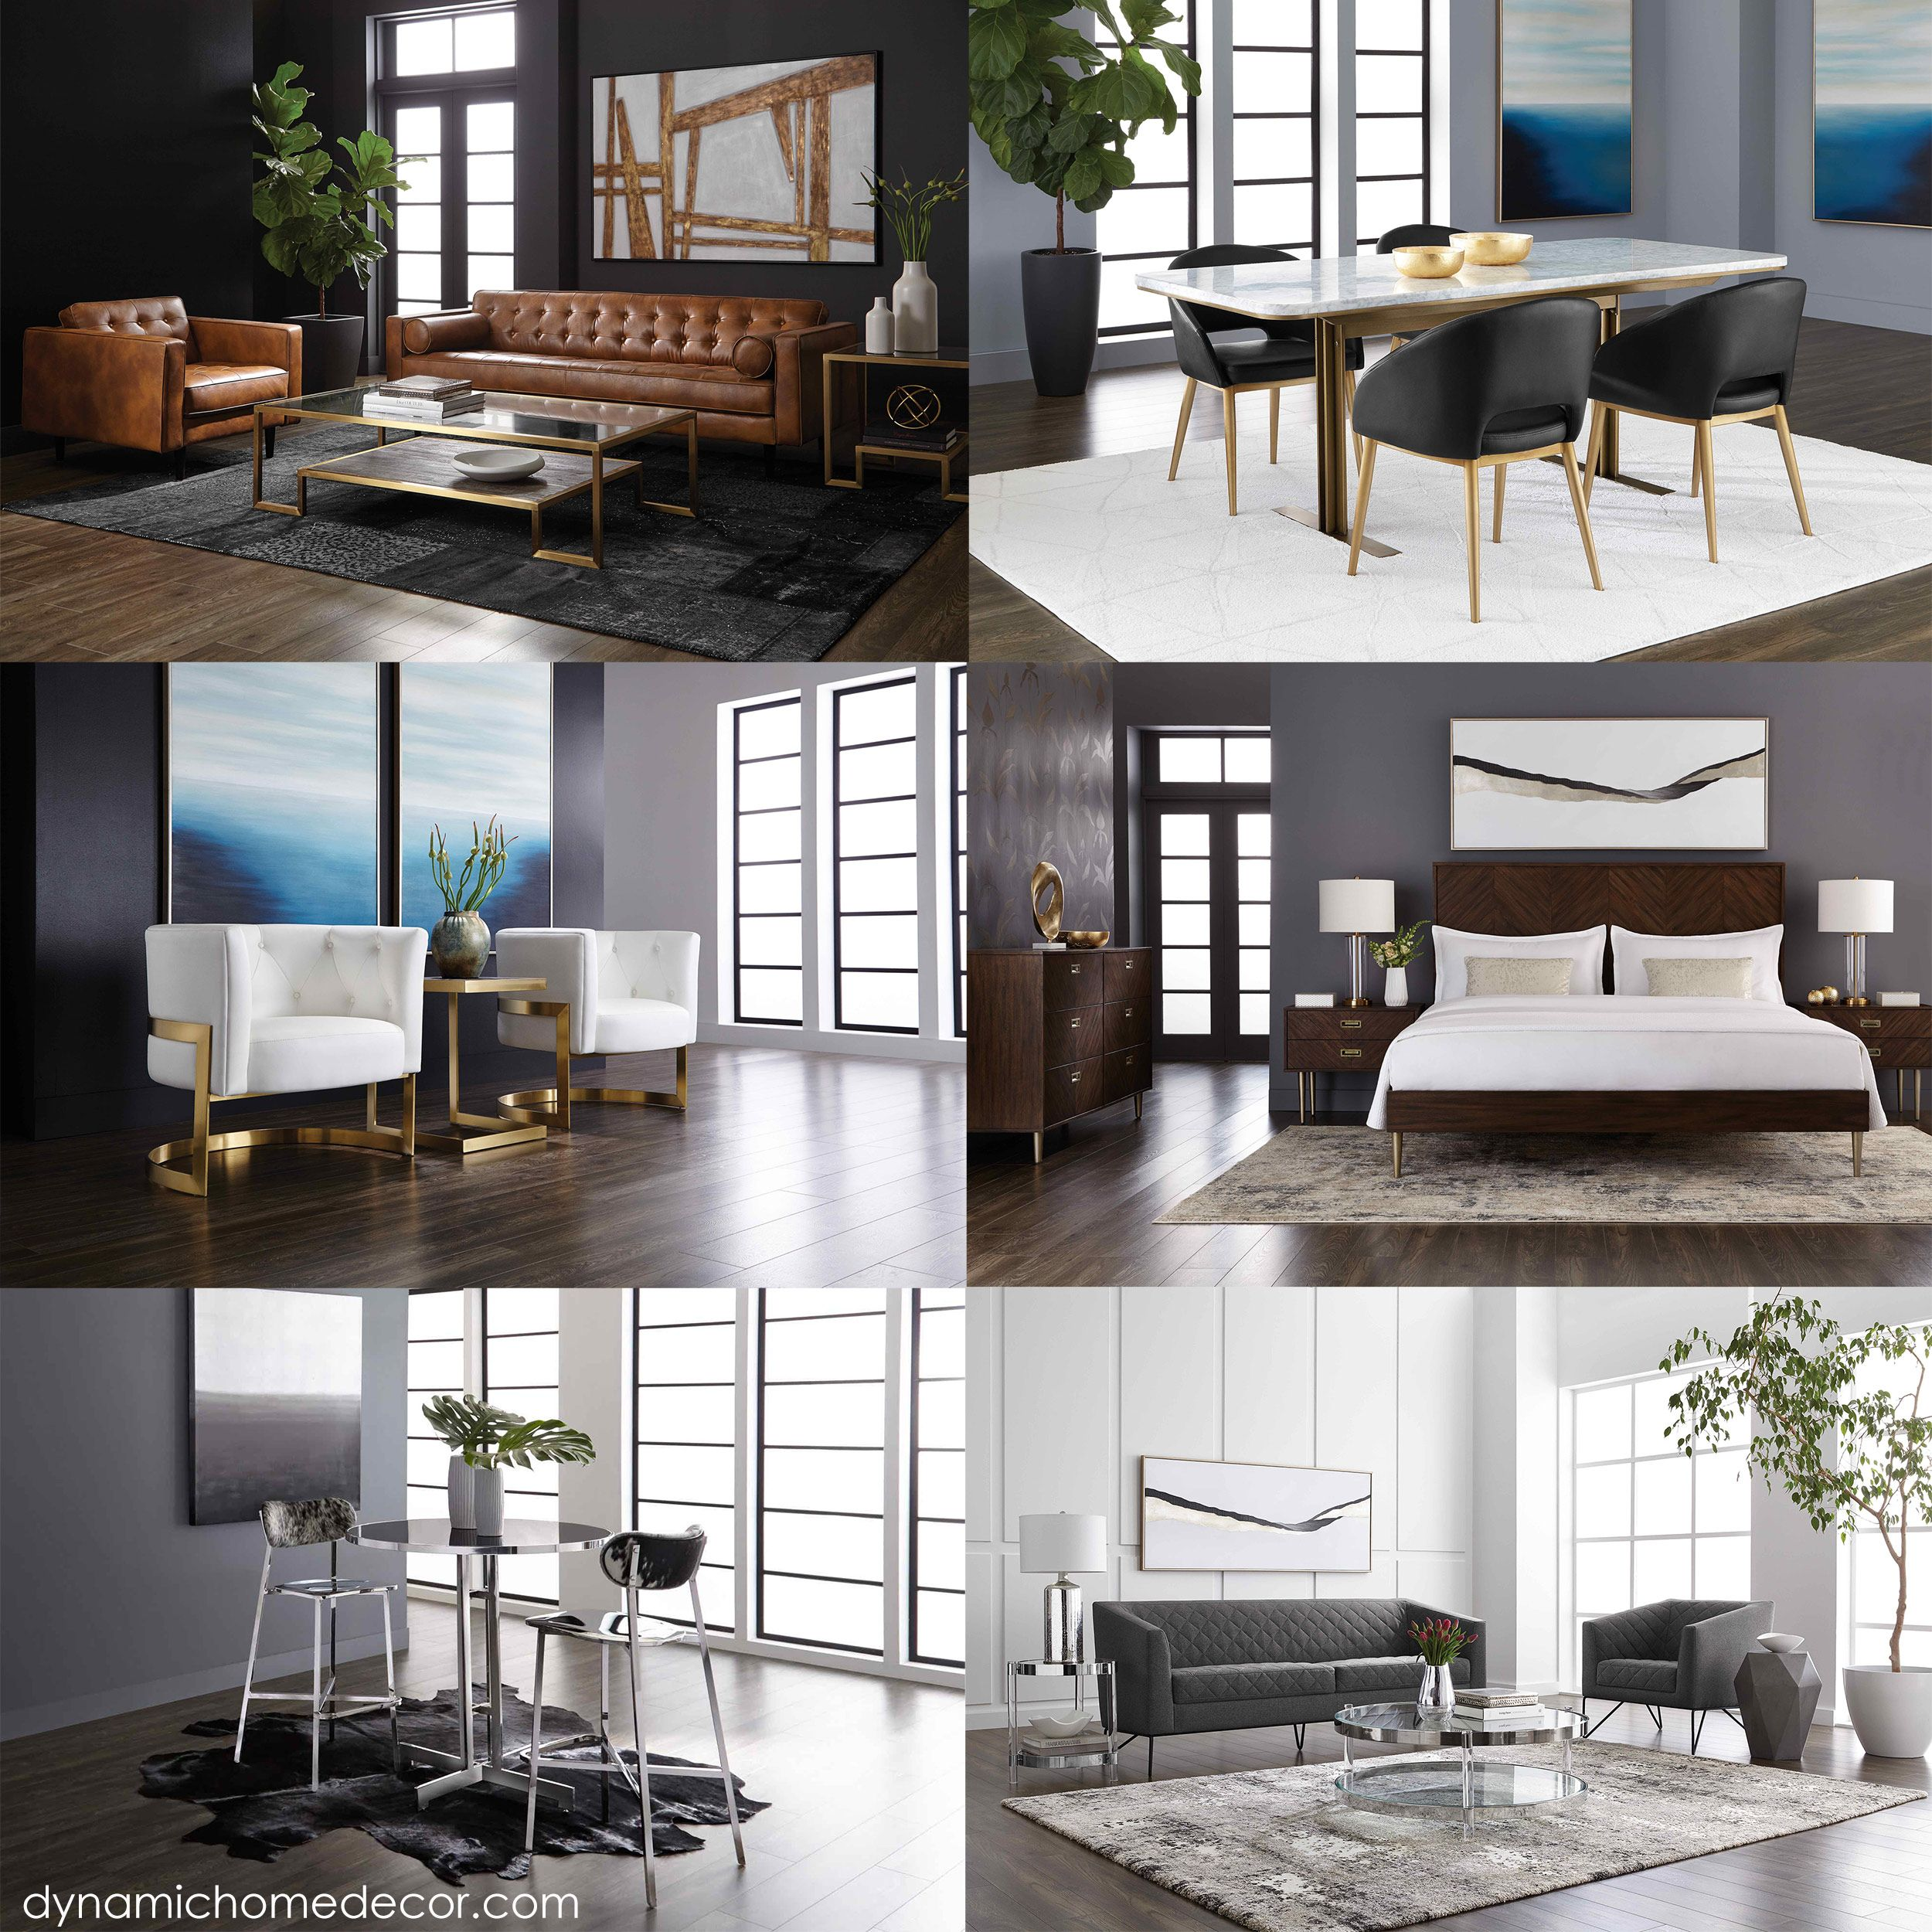 Shop the latest by sunpan bed king queen sofa chair homedecor lighting furniture interior design decor modern transitional industrial style